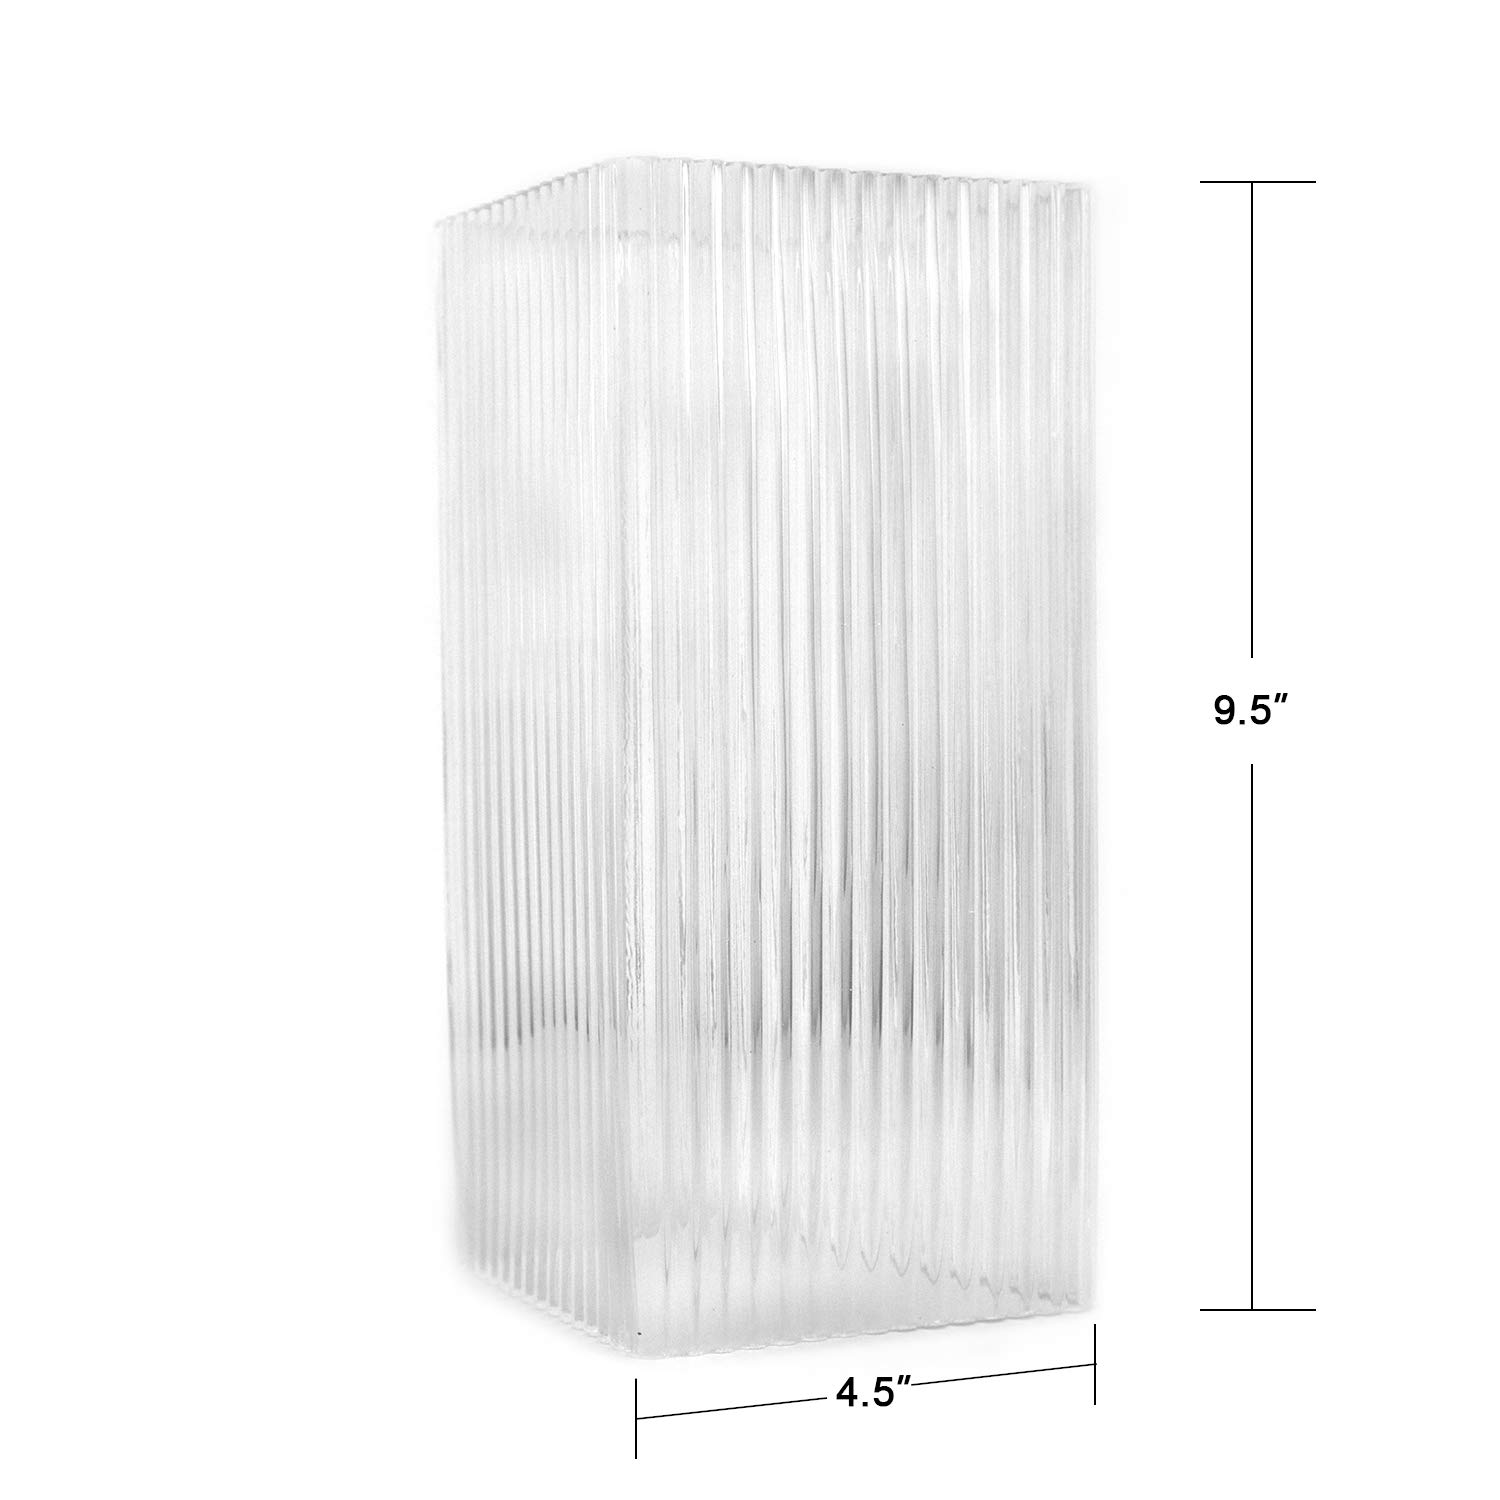 2377-GLASS 1 Pack Osimir Glass Spare Parts Clear Ribbed Glass Lampshade Glass Replacement for Model 2377//1WL-2PK and 2377//1GL